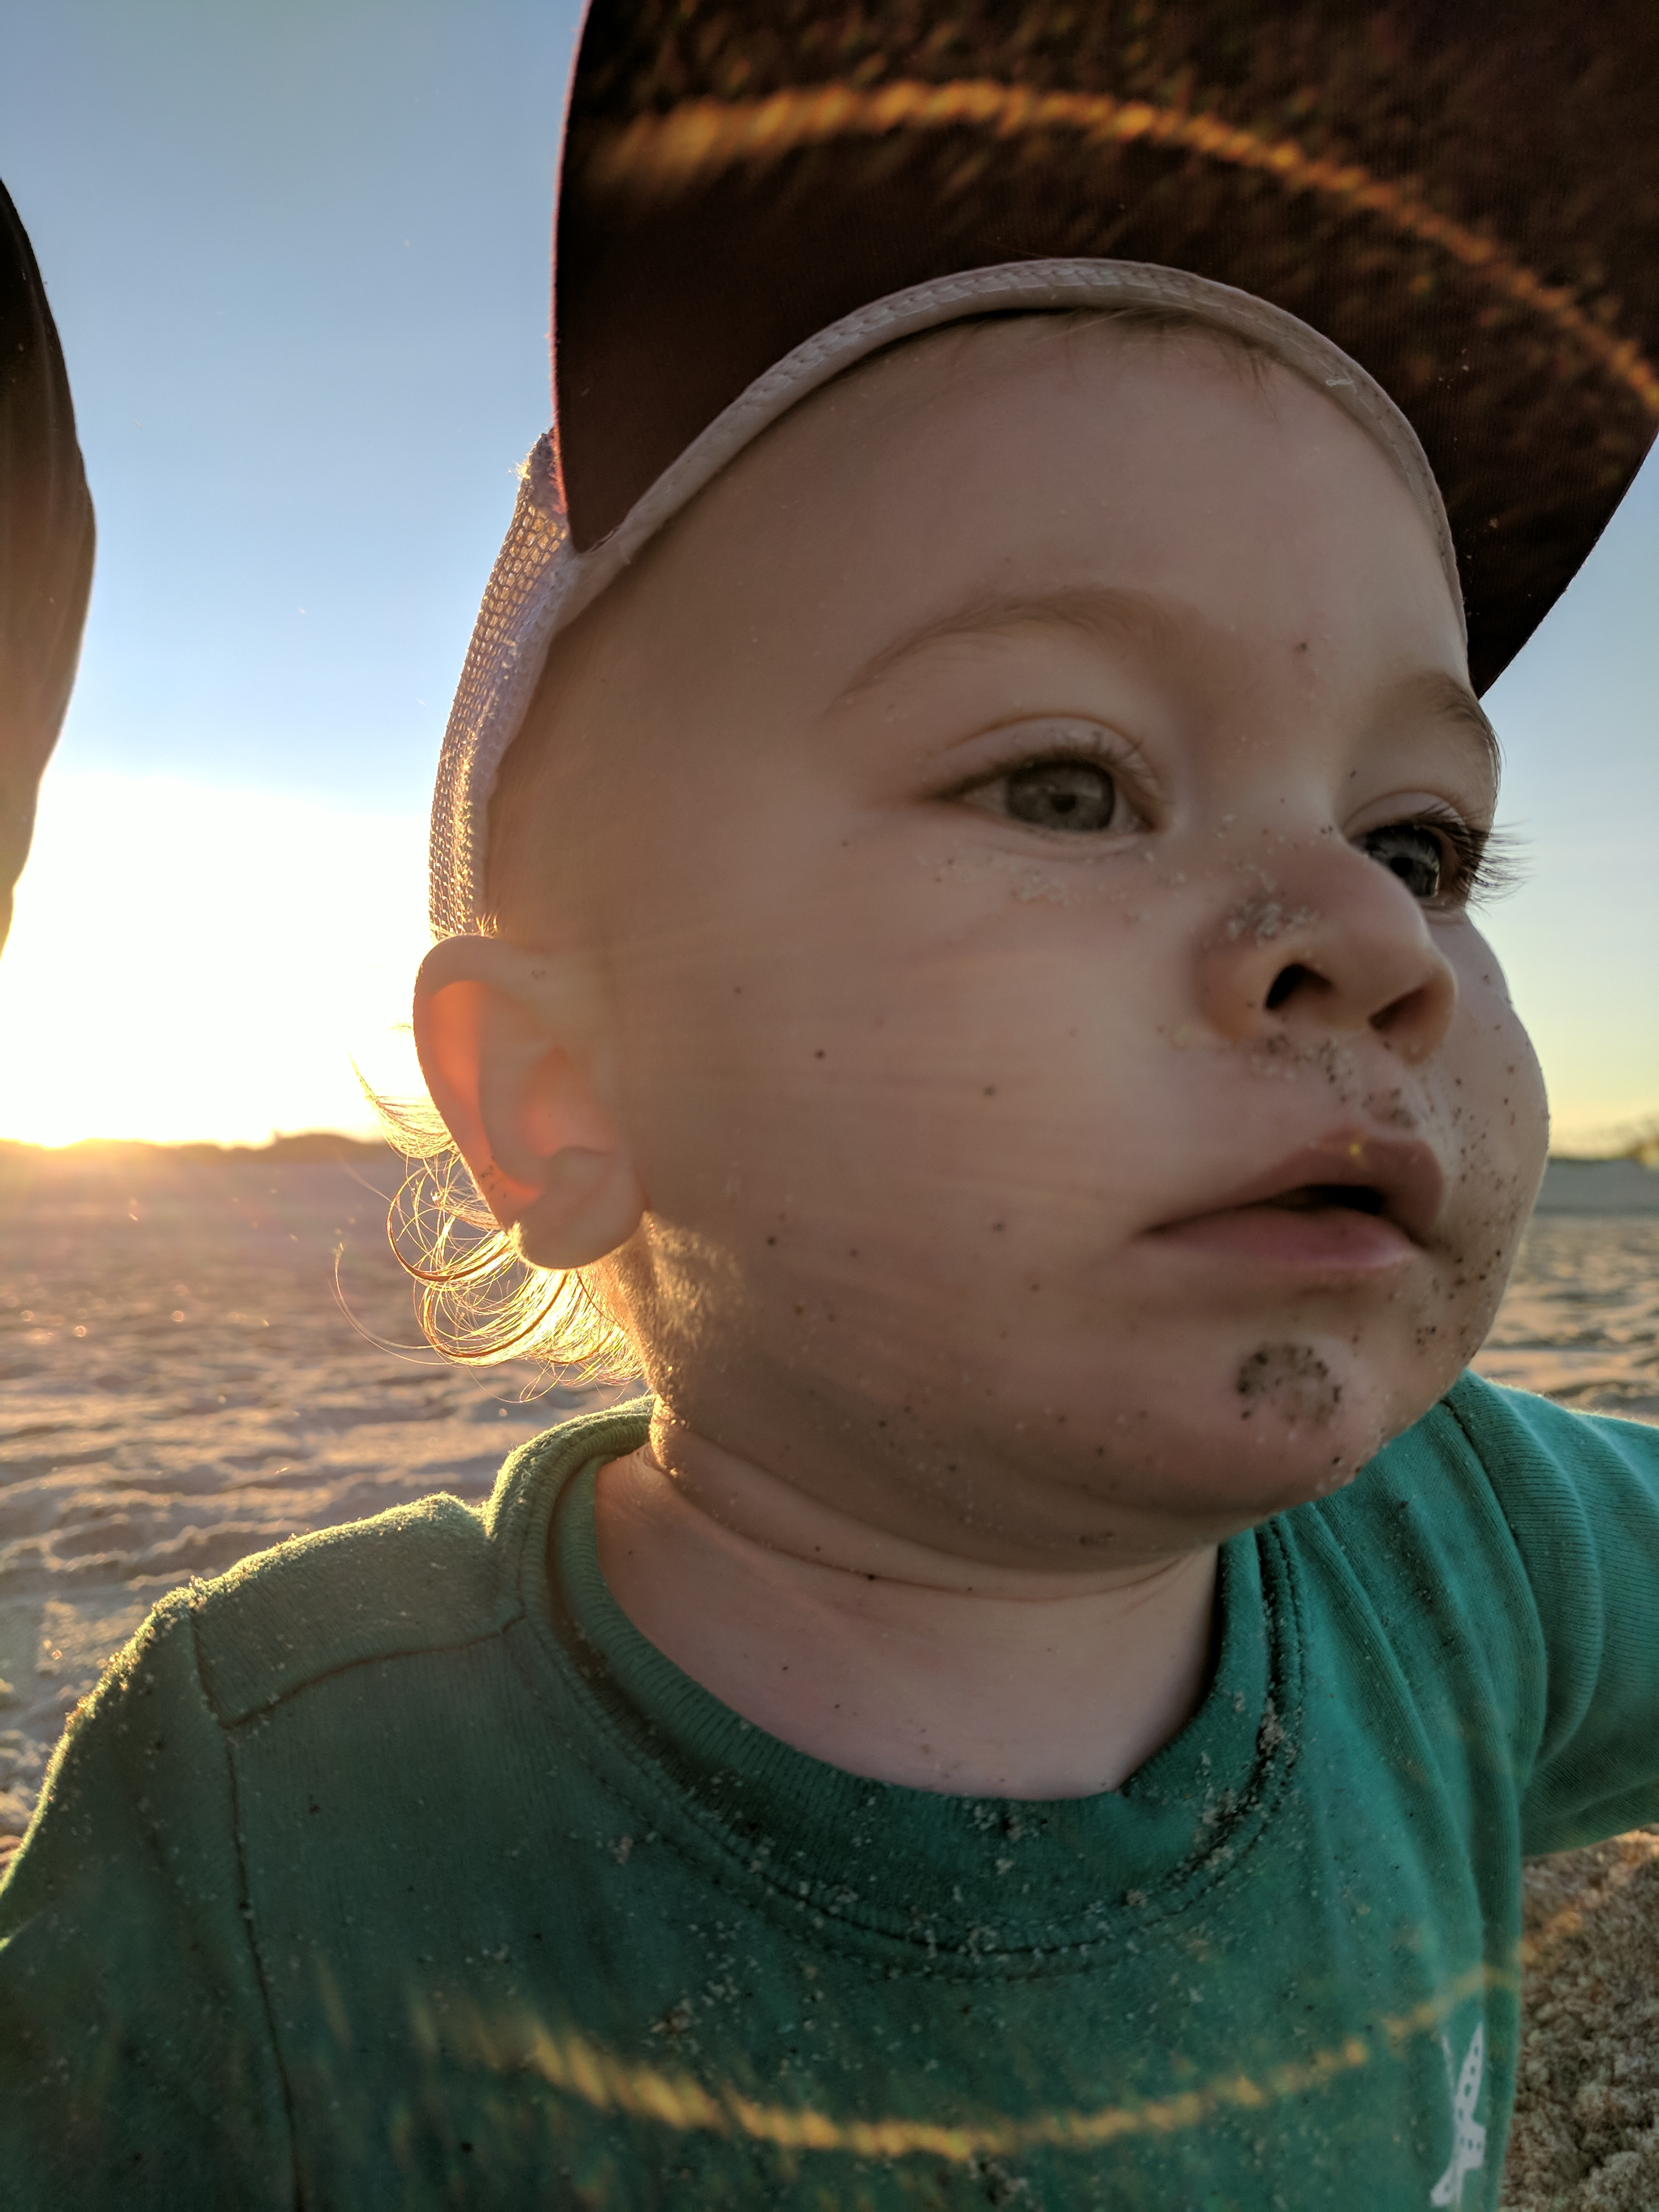 The Grand Seeley Adventure, family vacation, sand and golden hour